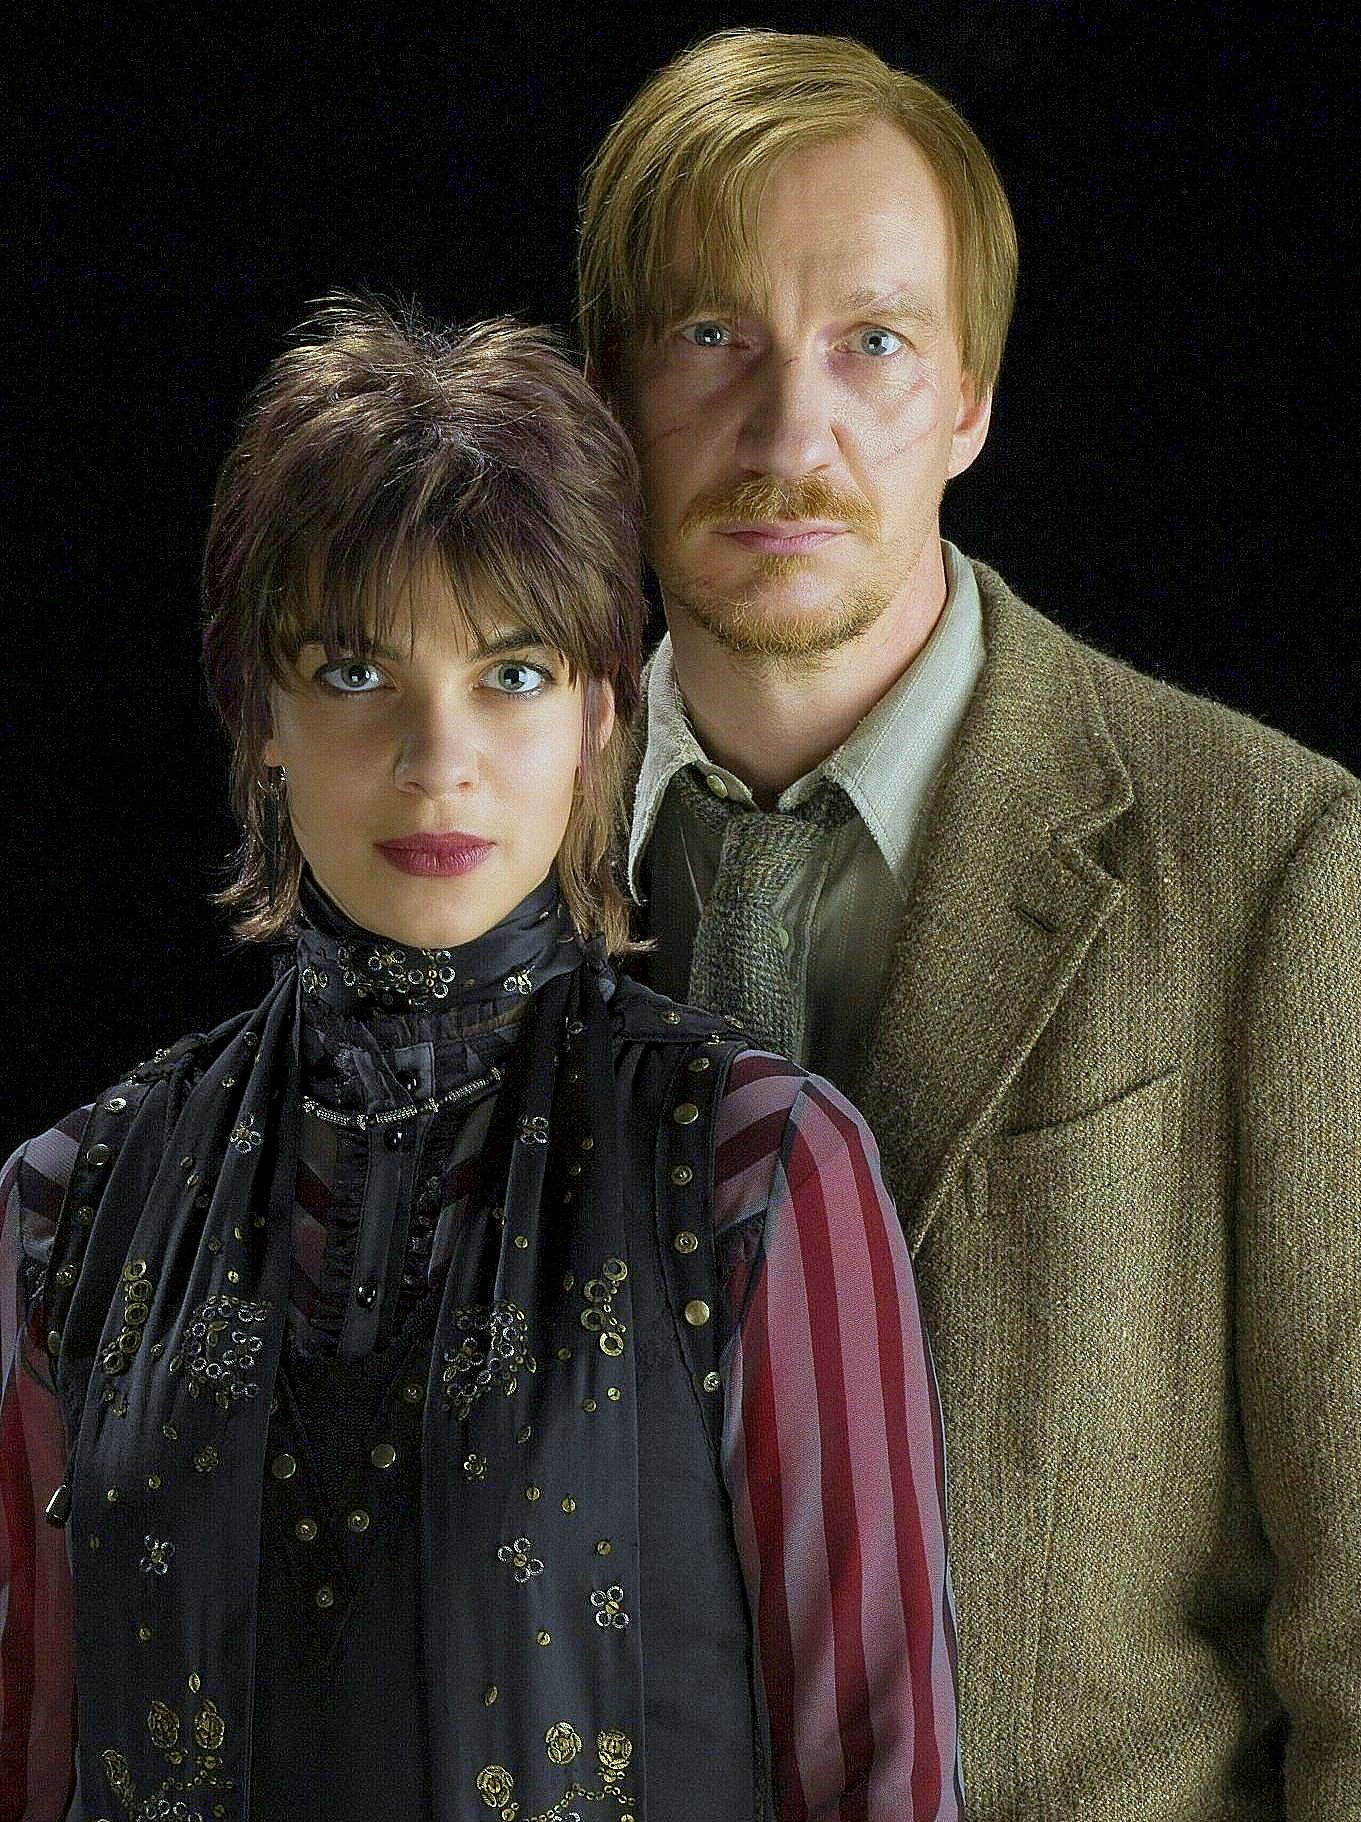 Wedding of Remus Lupin and Nymphadora Tonks | Harry Potter